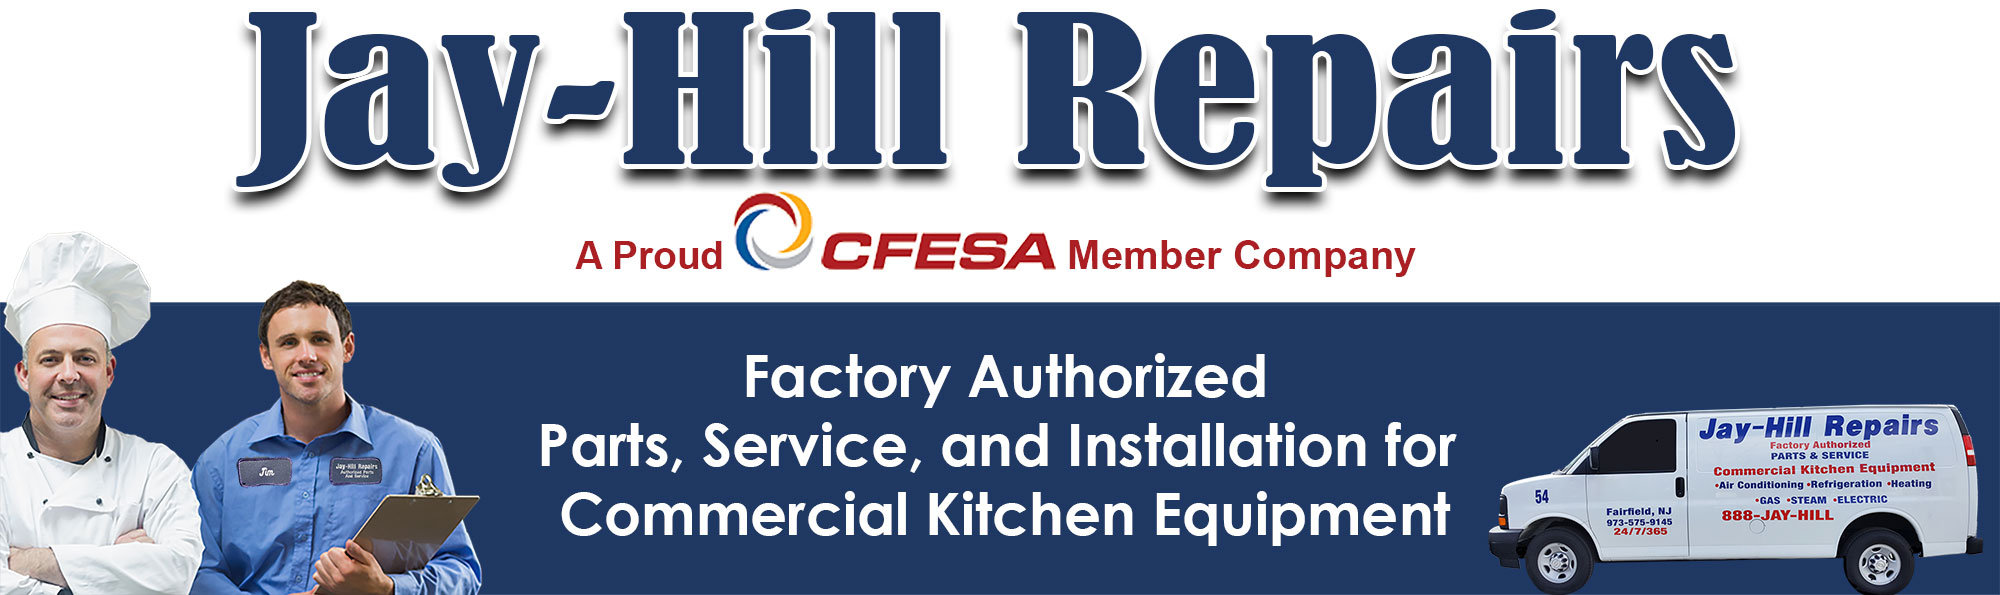 Jay-Hill Repairs - Factory Authorized Parts, Service and Installation for Commercial Kitchen Equipment